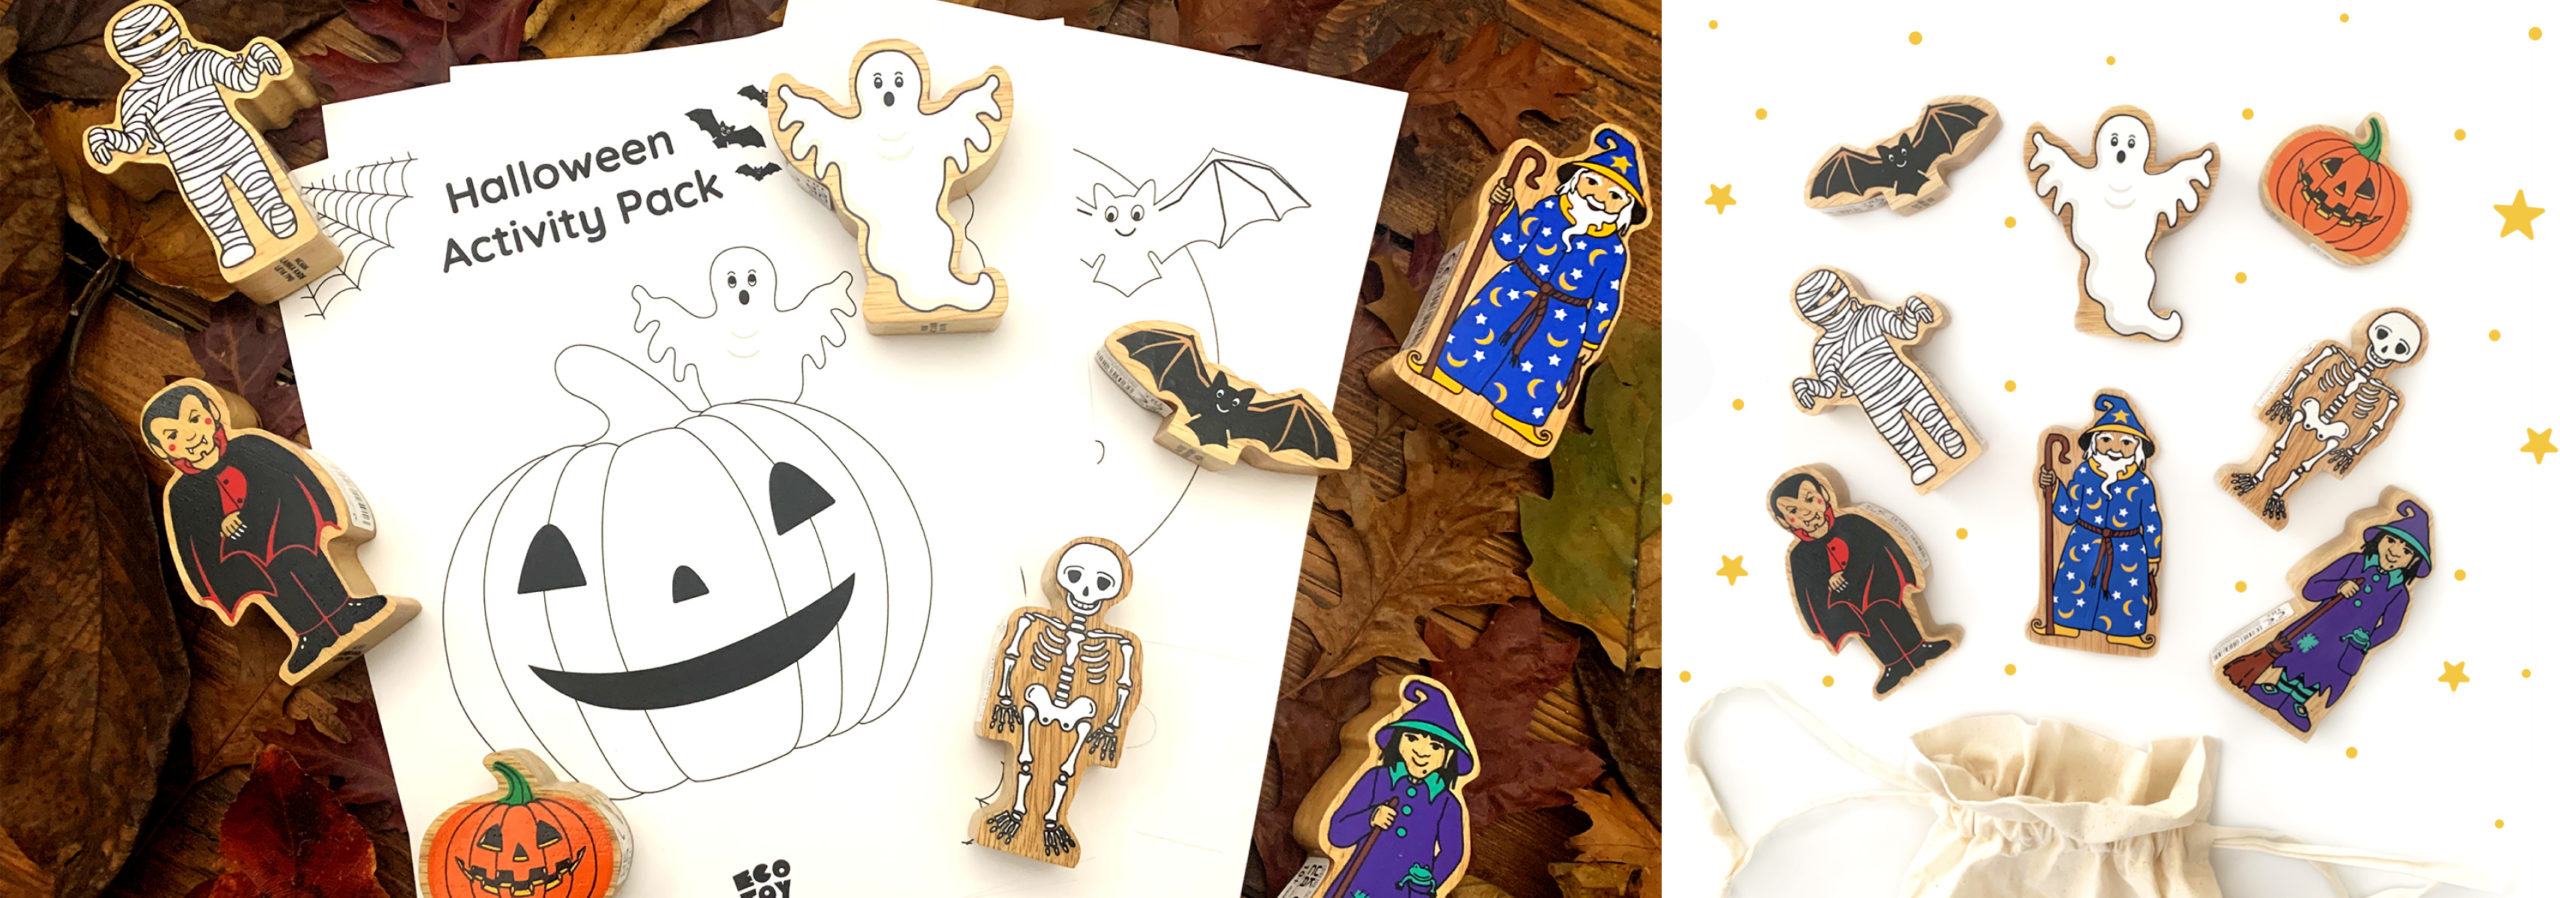 photo shows a free halloween activity pack and wooden halloween figures